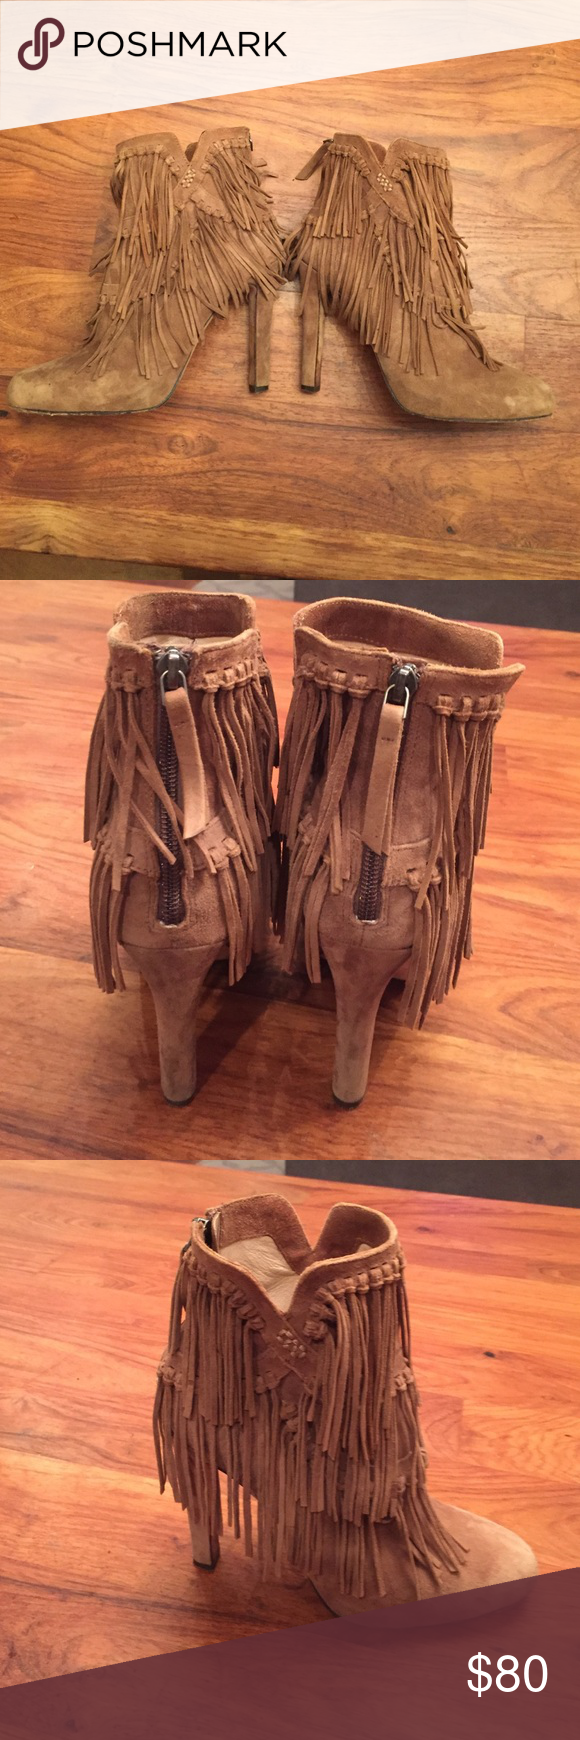 Fringed booties size 38.5 Fringed suede booties Pepe size 38.5.  Zippered back. Jean-Michelle Cazabat Shoes Ankle Boots & Booties